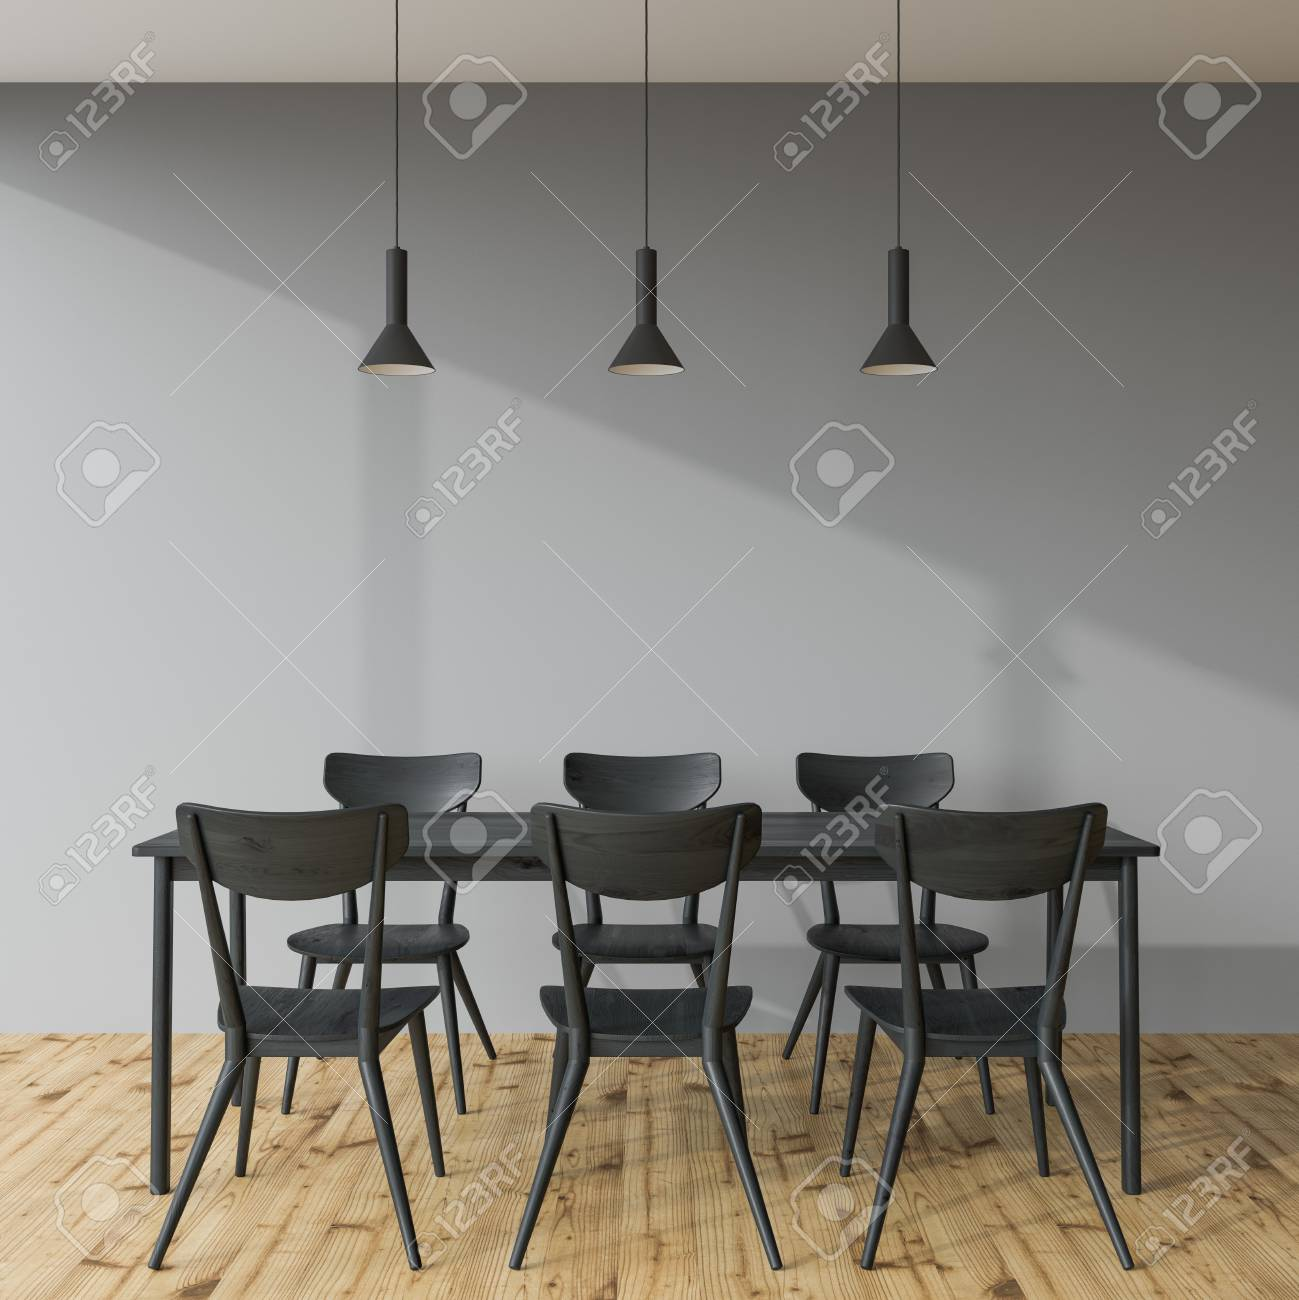 Black Dining Room Table And Chairs Long Black Dining Room Table With Black Chairs Standing In An